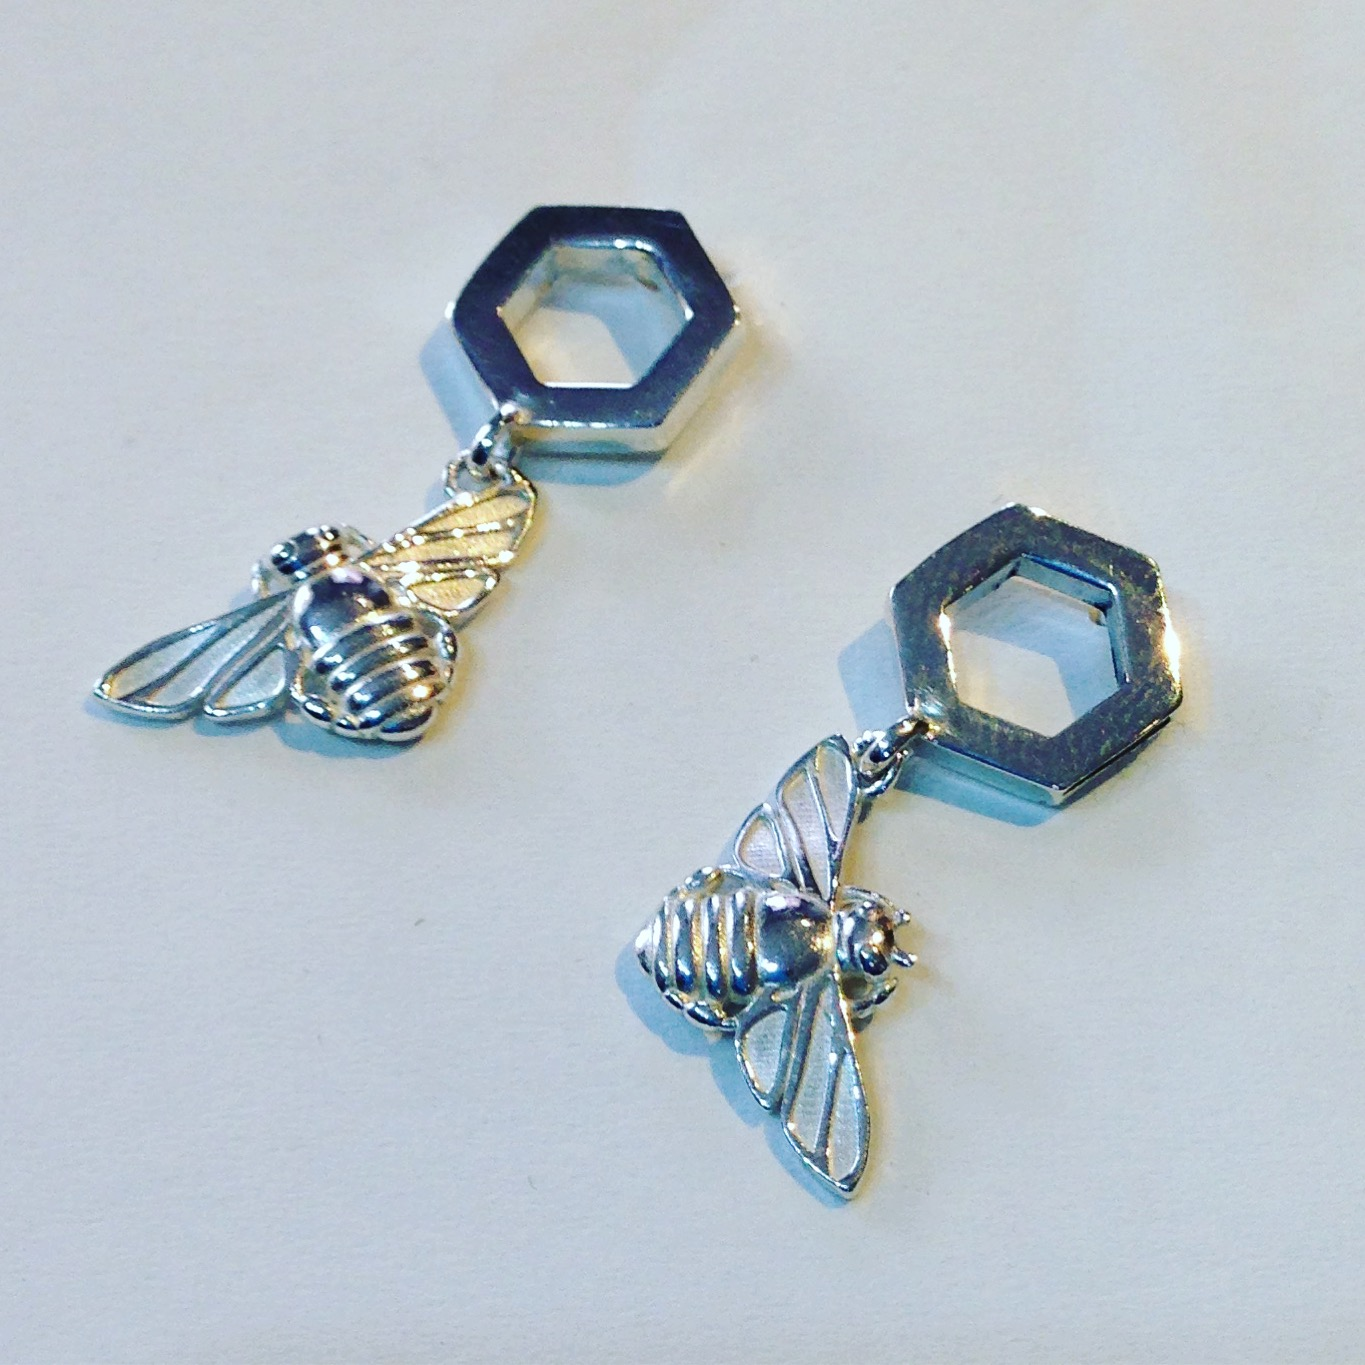 Honey bee earrings from Patricia Dudgeon Designs